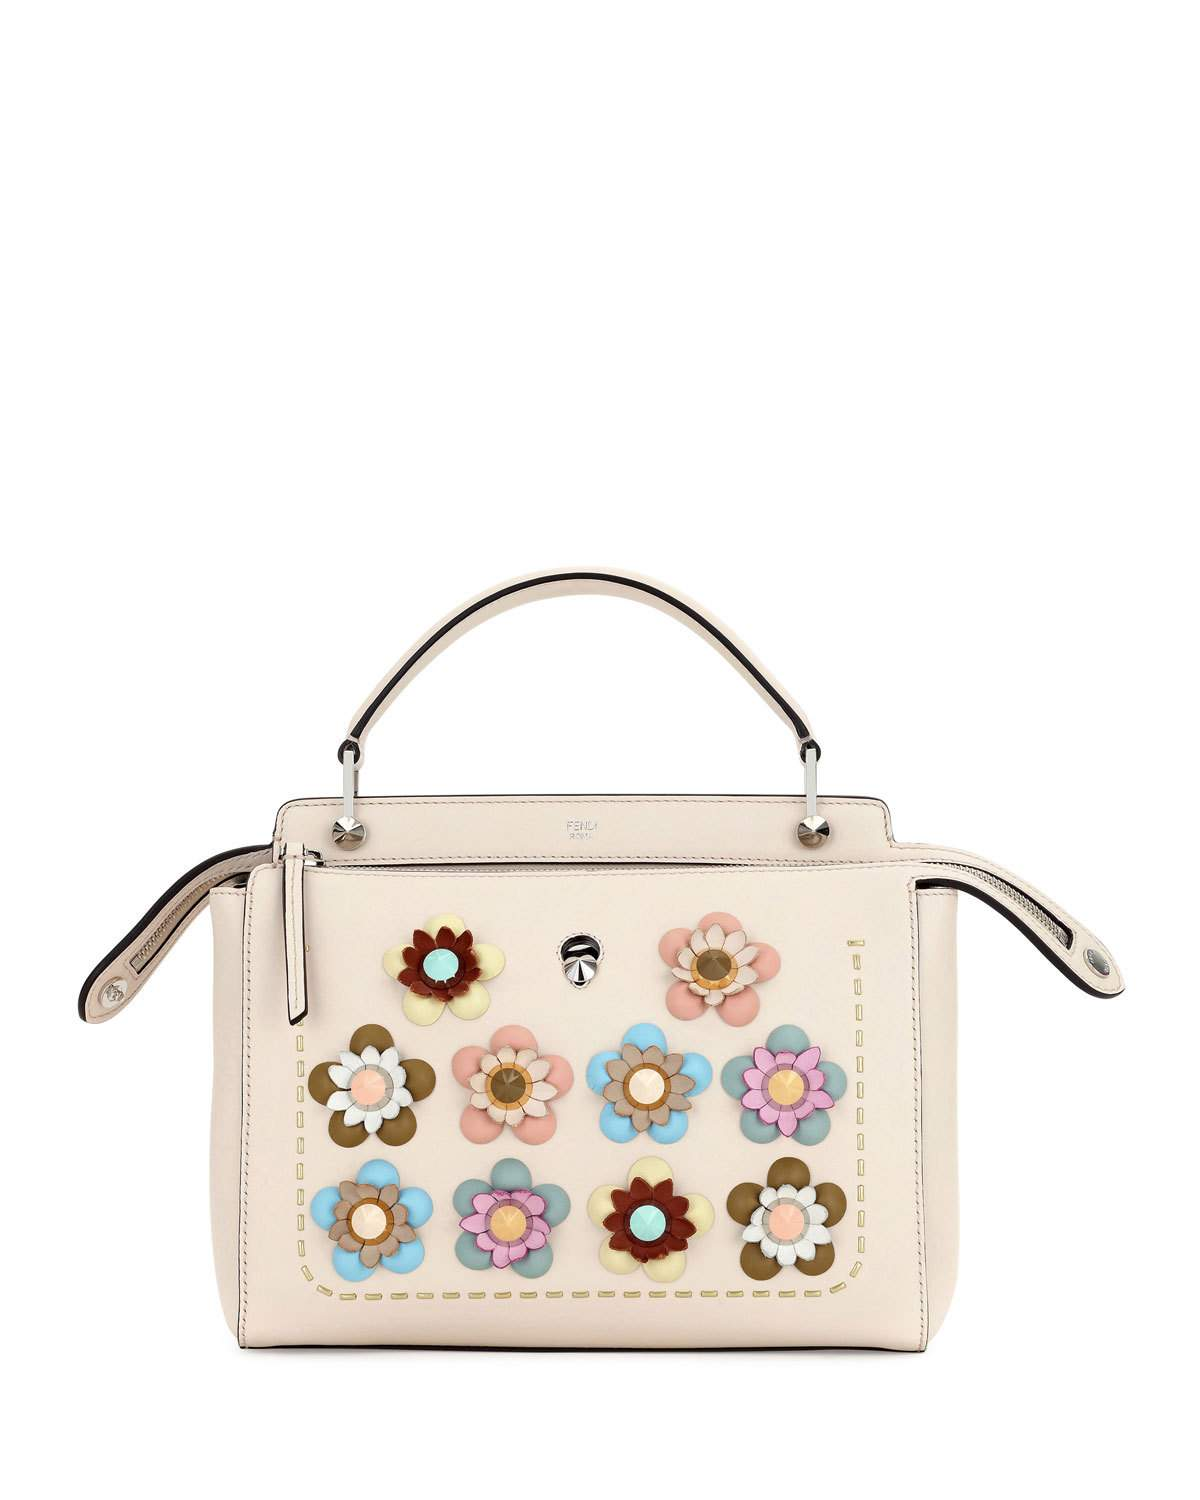 2f159bc3c050 Fendi Resort 2017 Bag Collection Featuring Floral Bags